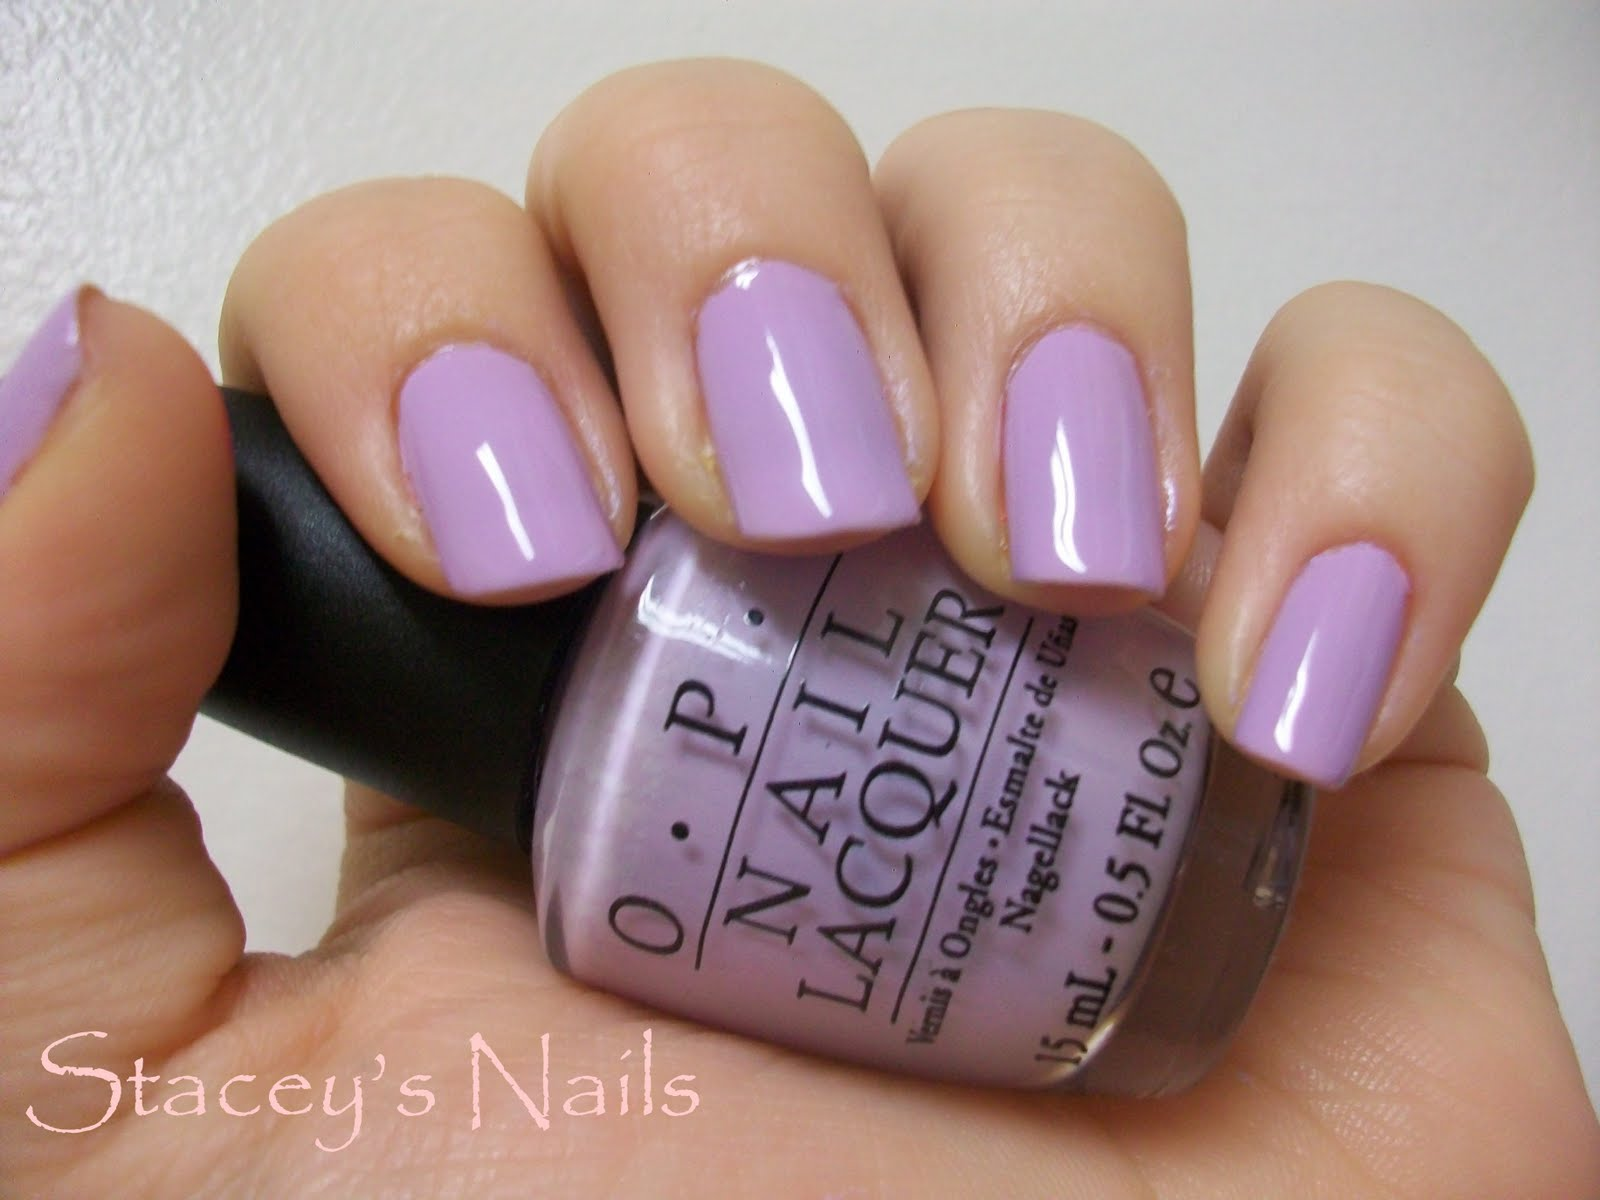 * Stacey's Nails *: Purple Nails for Caylee